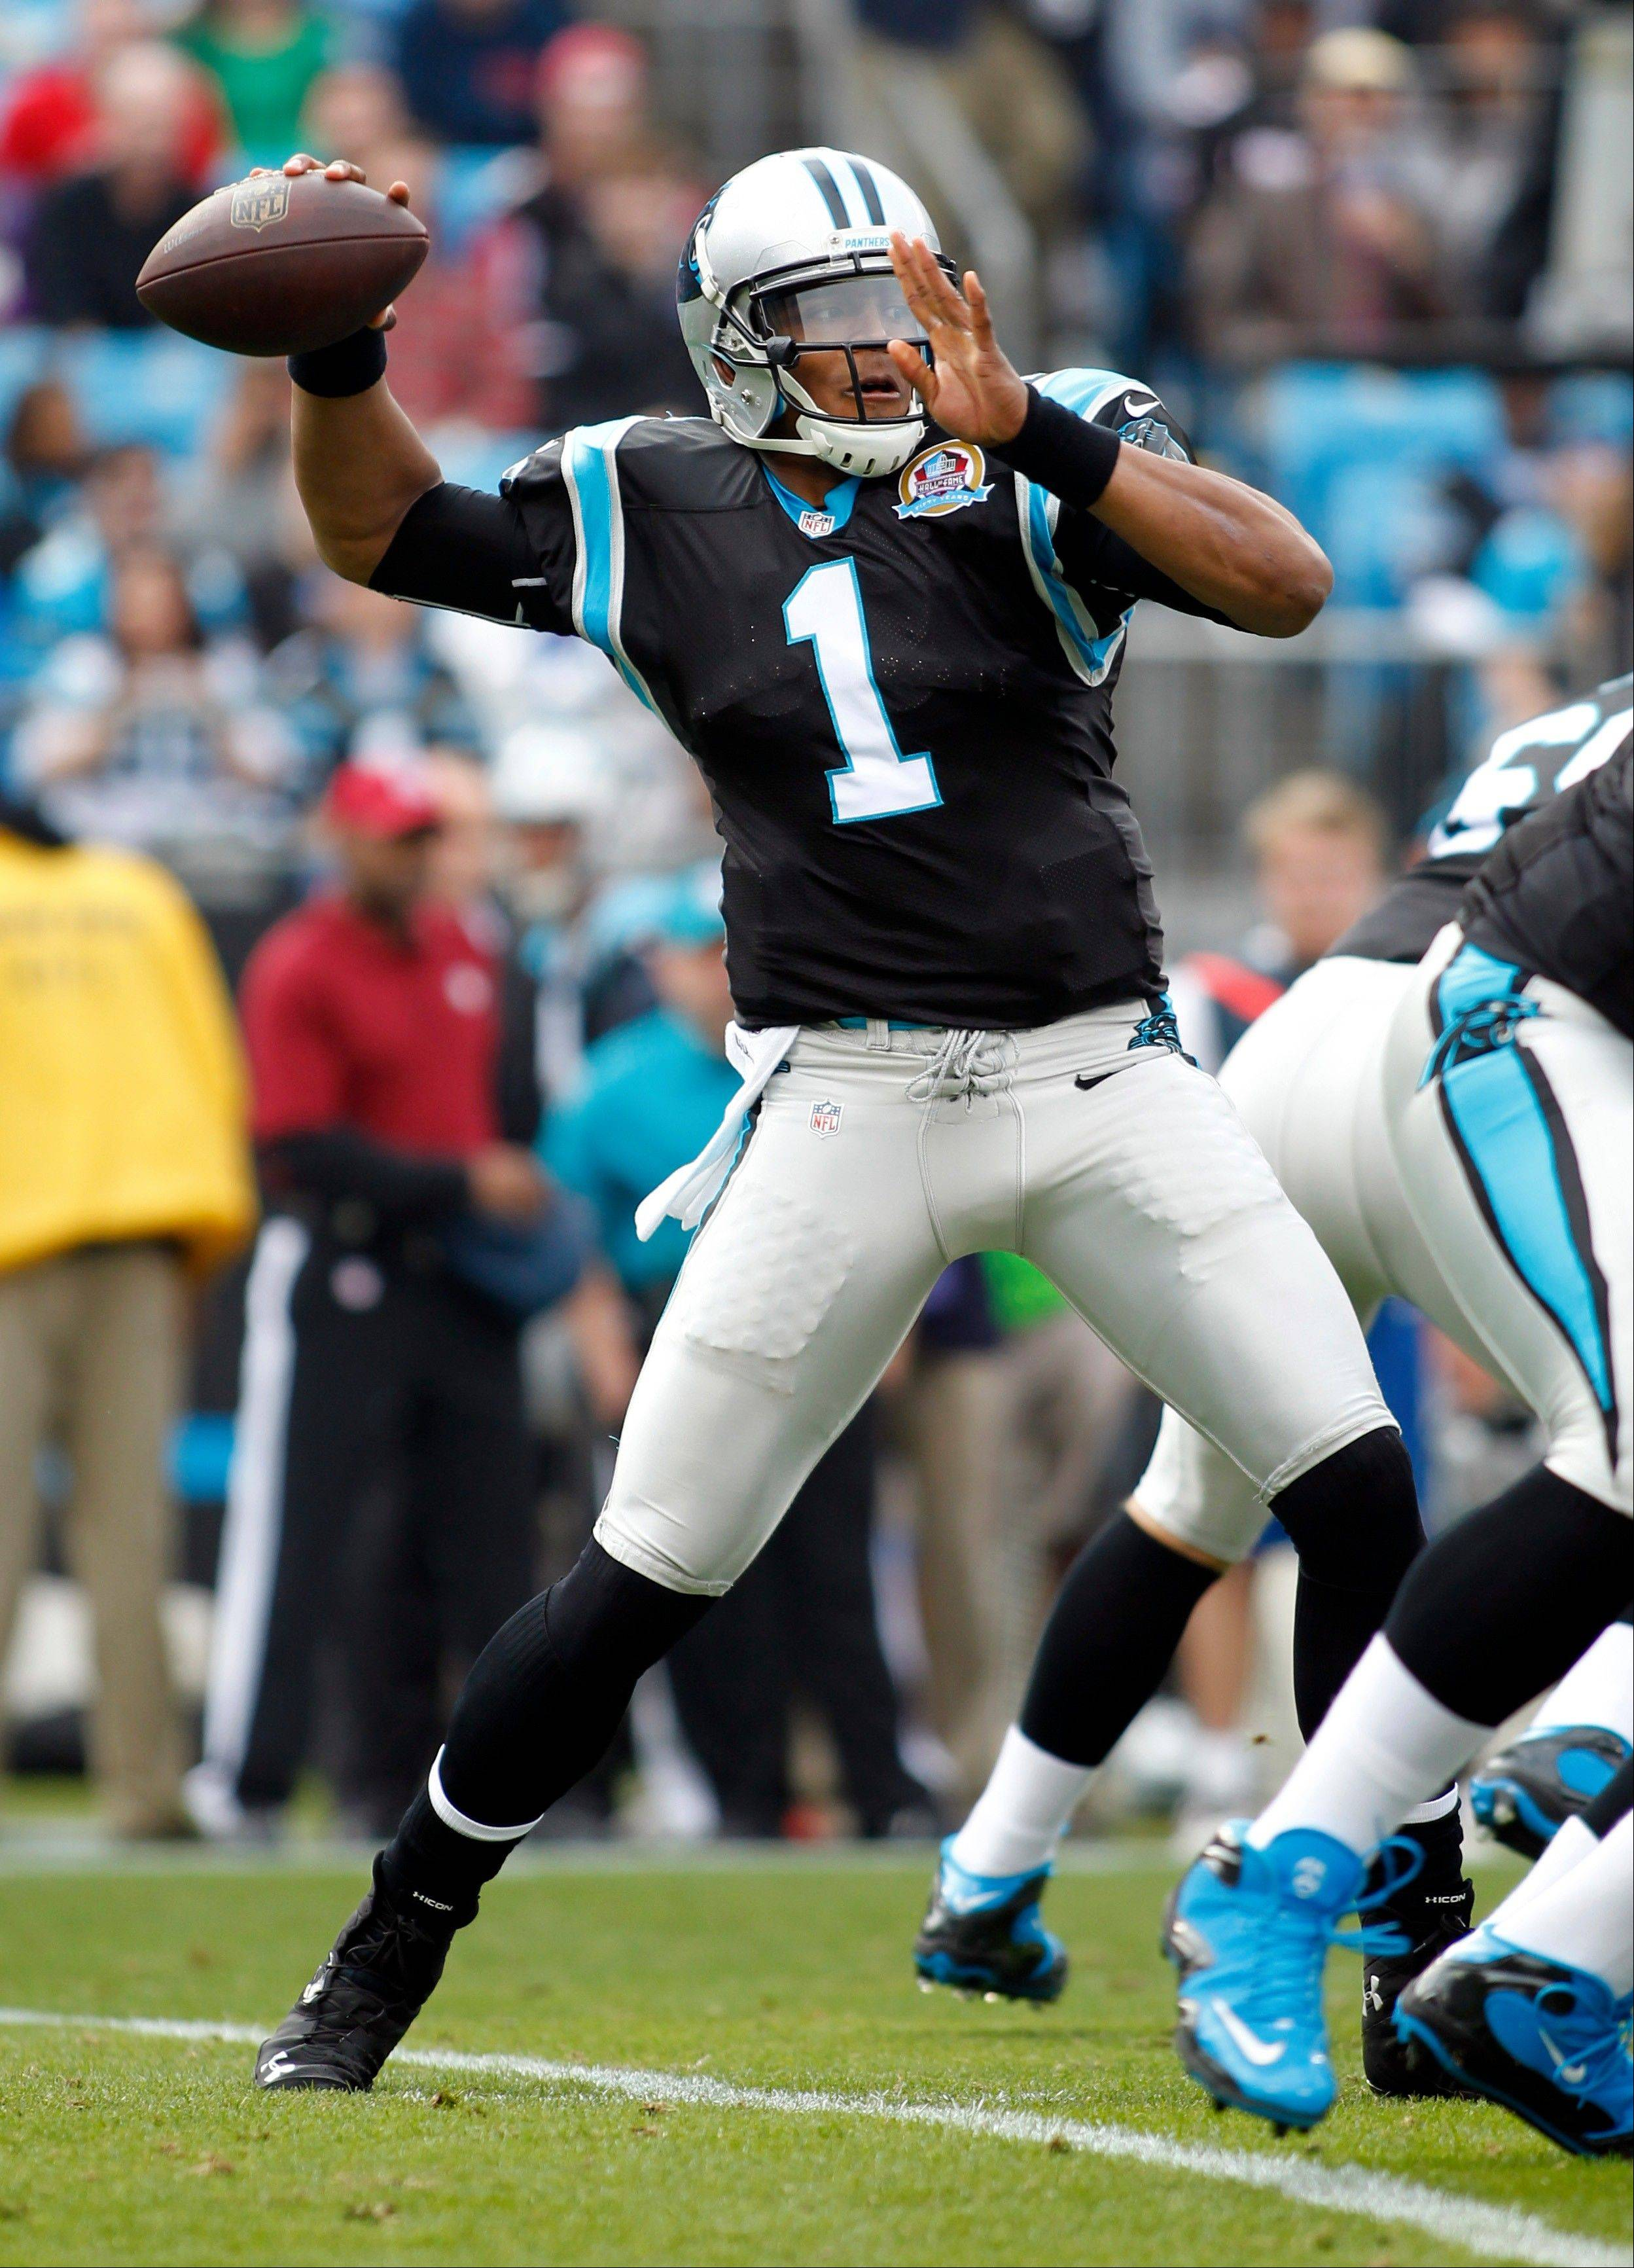 Carolina Panthers quarterback Cam Newton looks to pass against the Atlanta Falcons during the first half of an NFL football game in Charlotte, N.C., Sunday, Dec. 9, 2012.